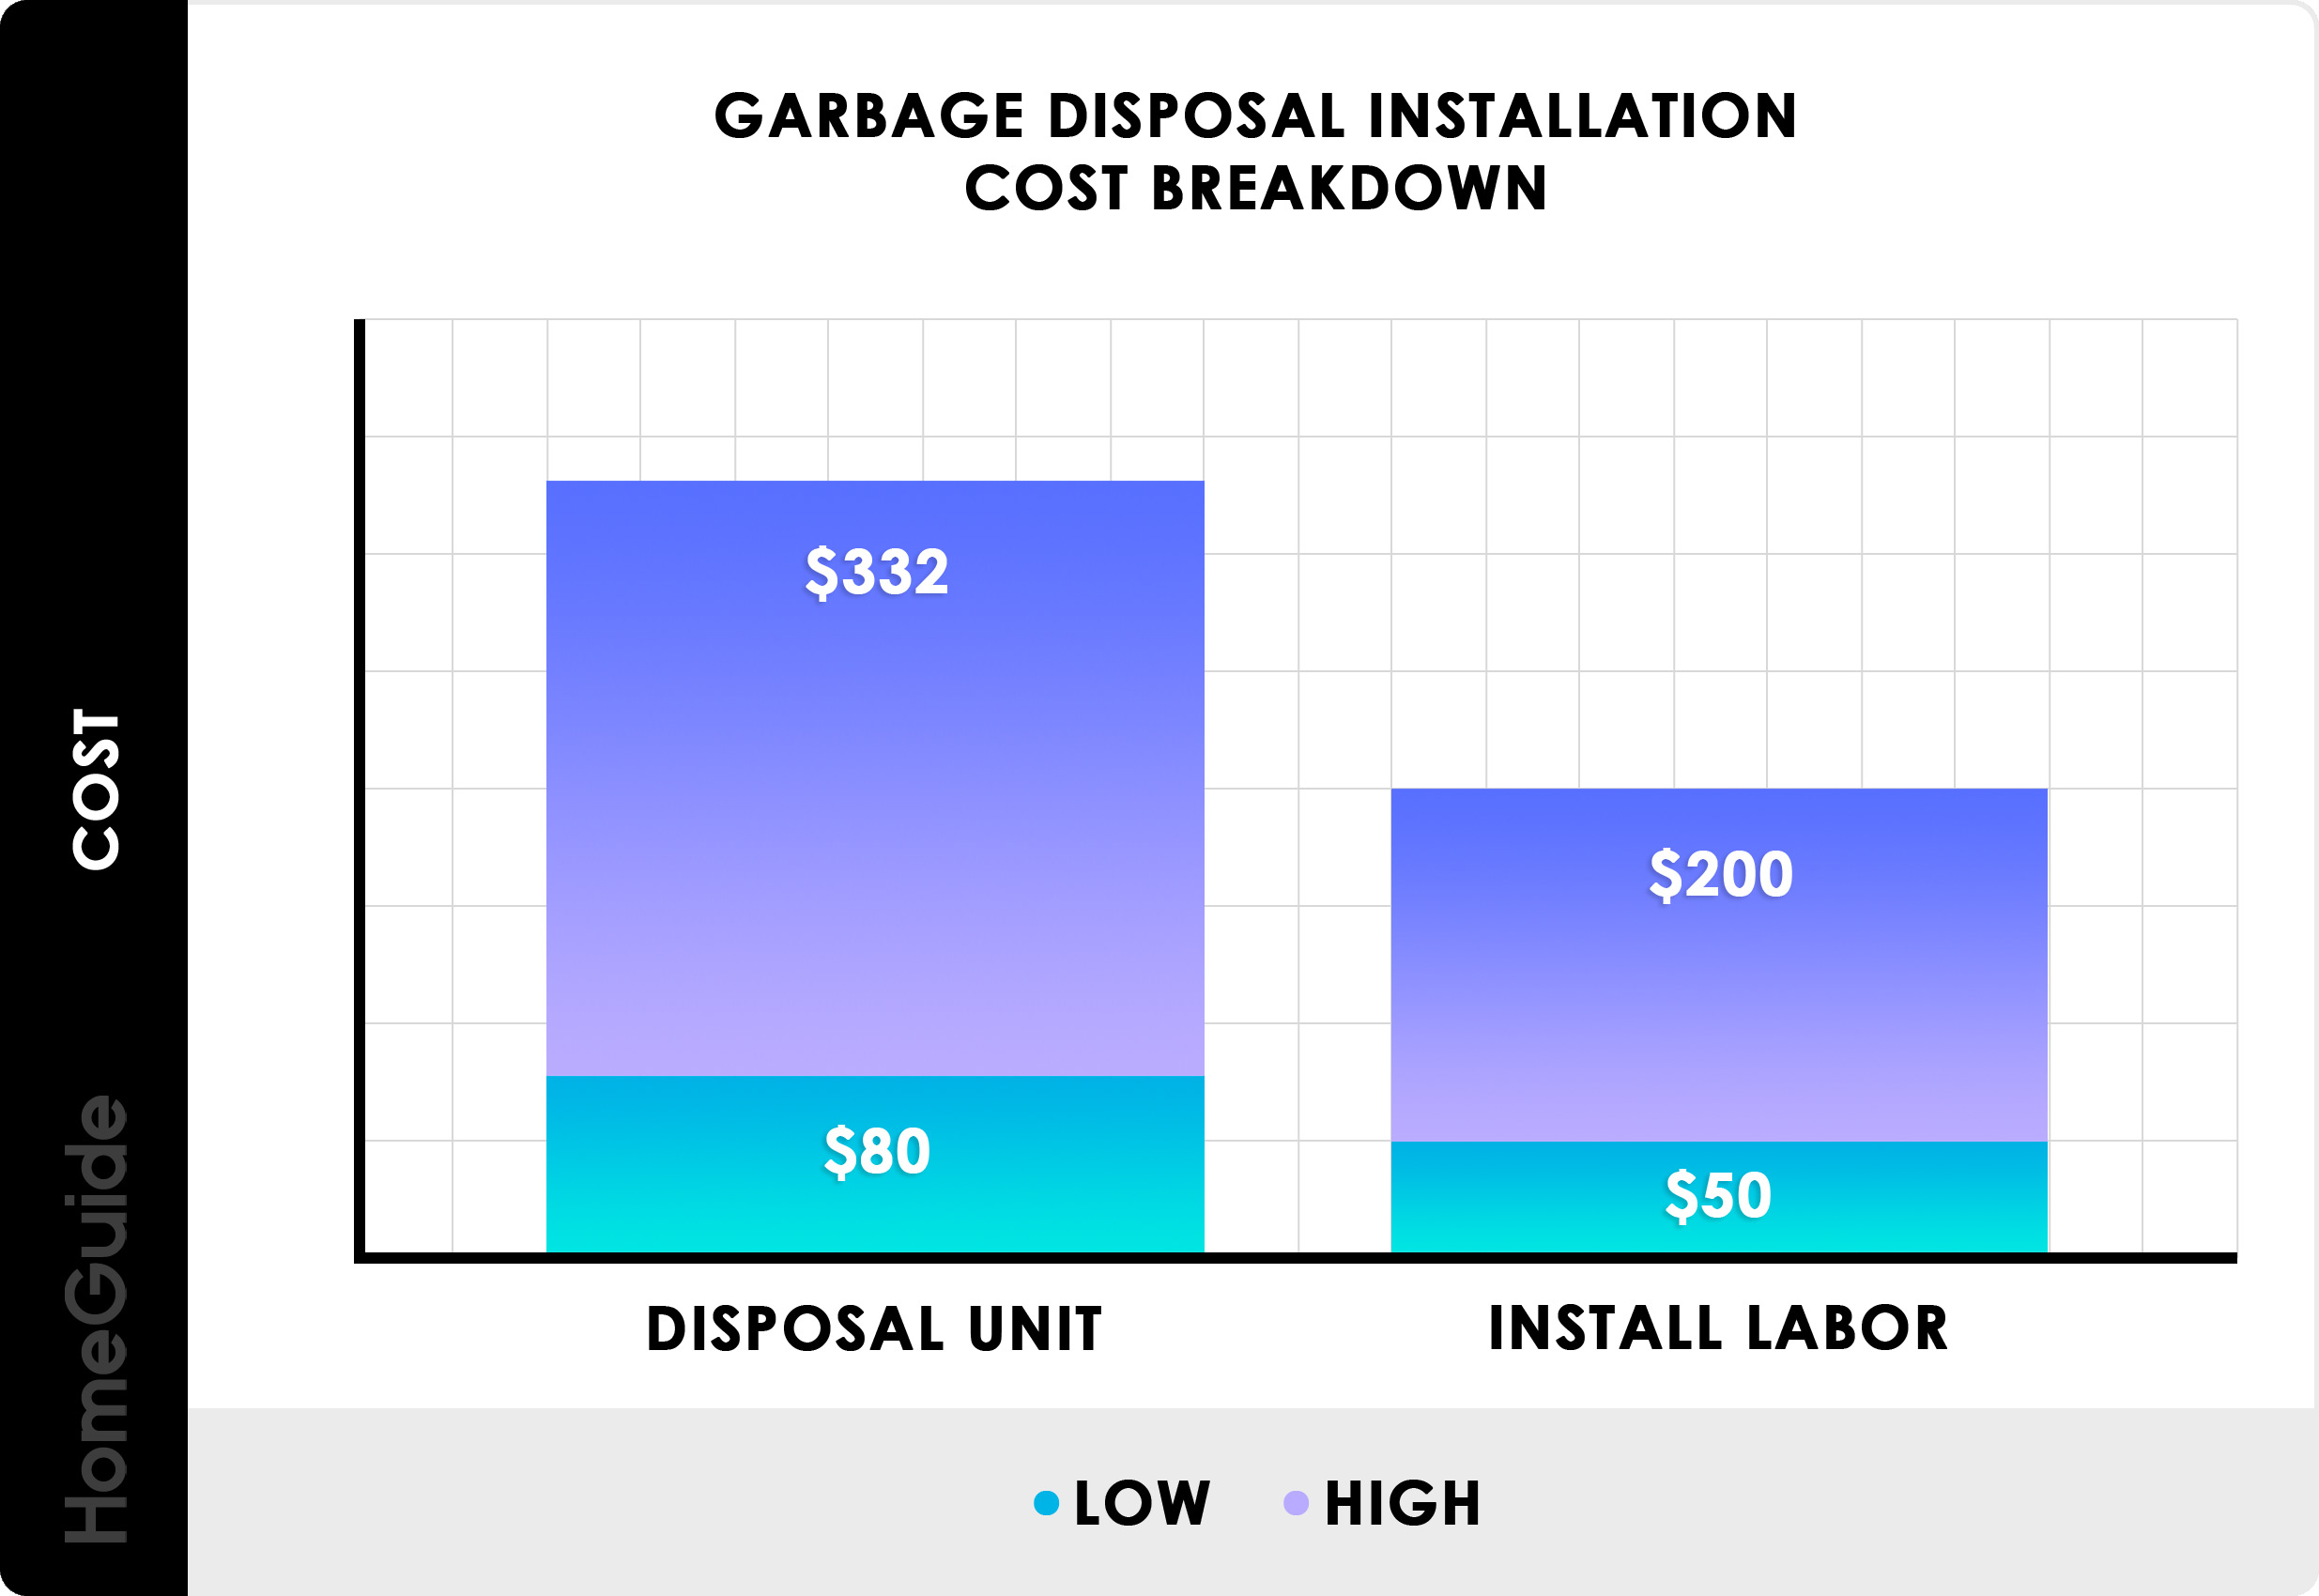 2019 Garbage Disposal Installation Cost Average Price To